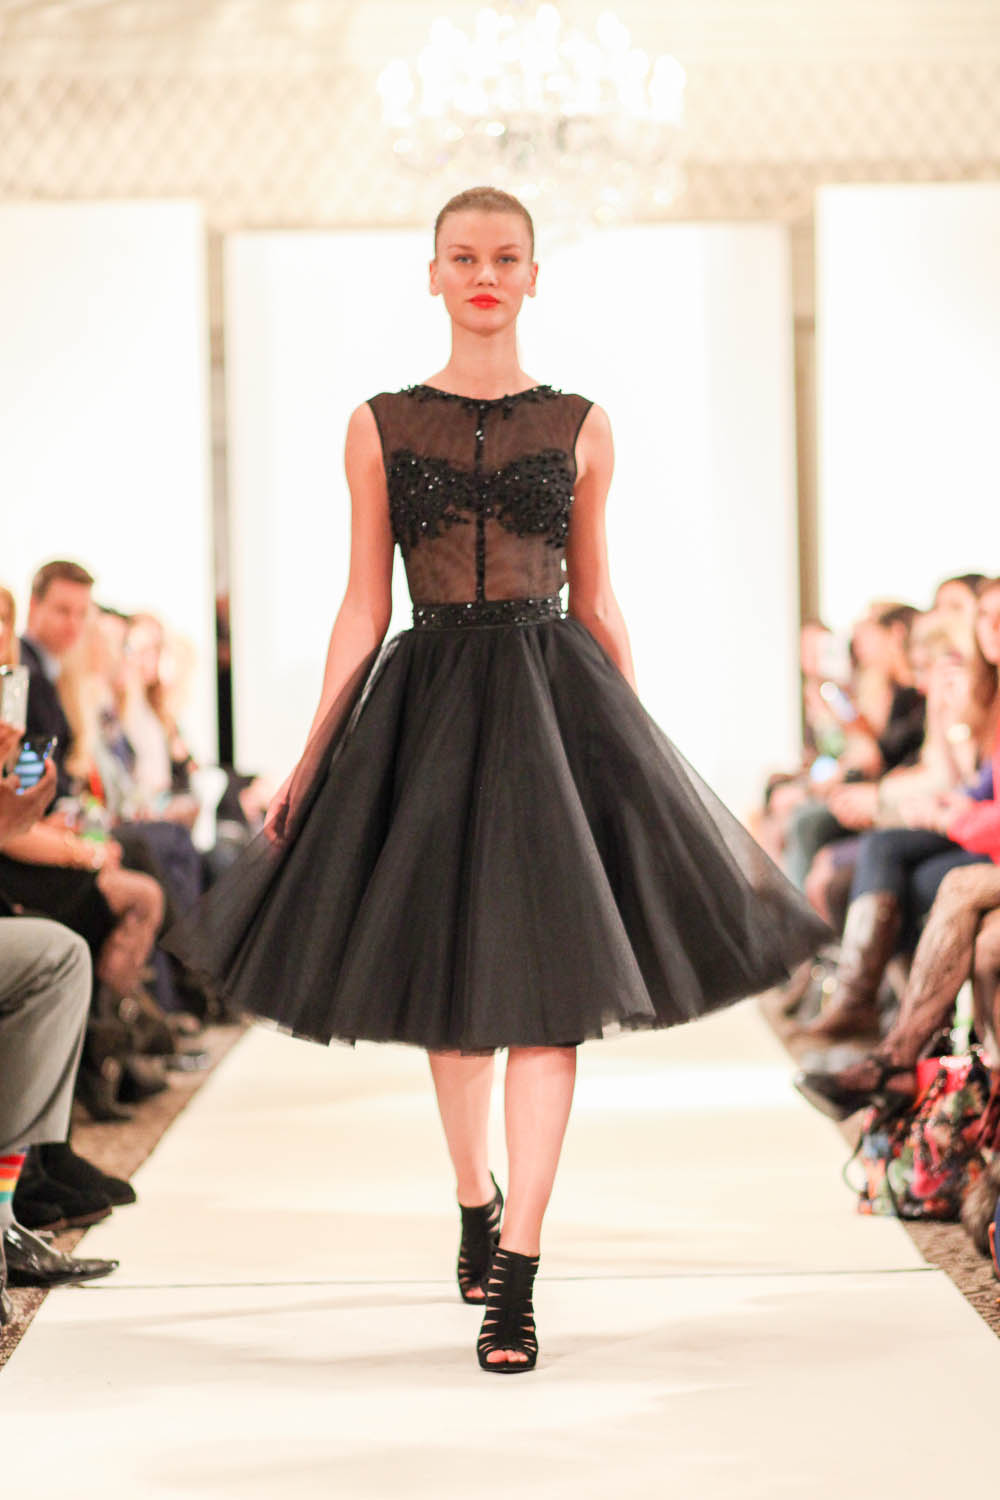 Dore Debuts Rtw Evening Separates And Show Stopping Gowns At Ny Fashion Week Women S Mafia Social Club And Online Magazine Featuring Fashion Events Beauty And Brilliant People